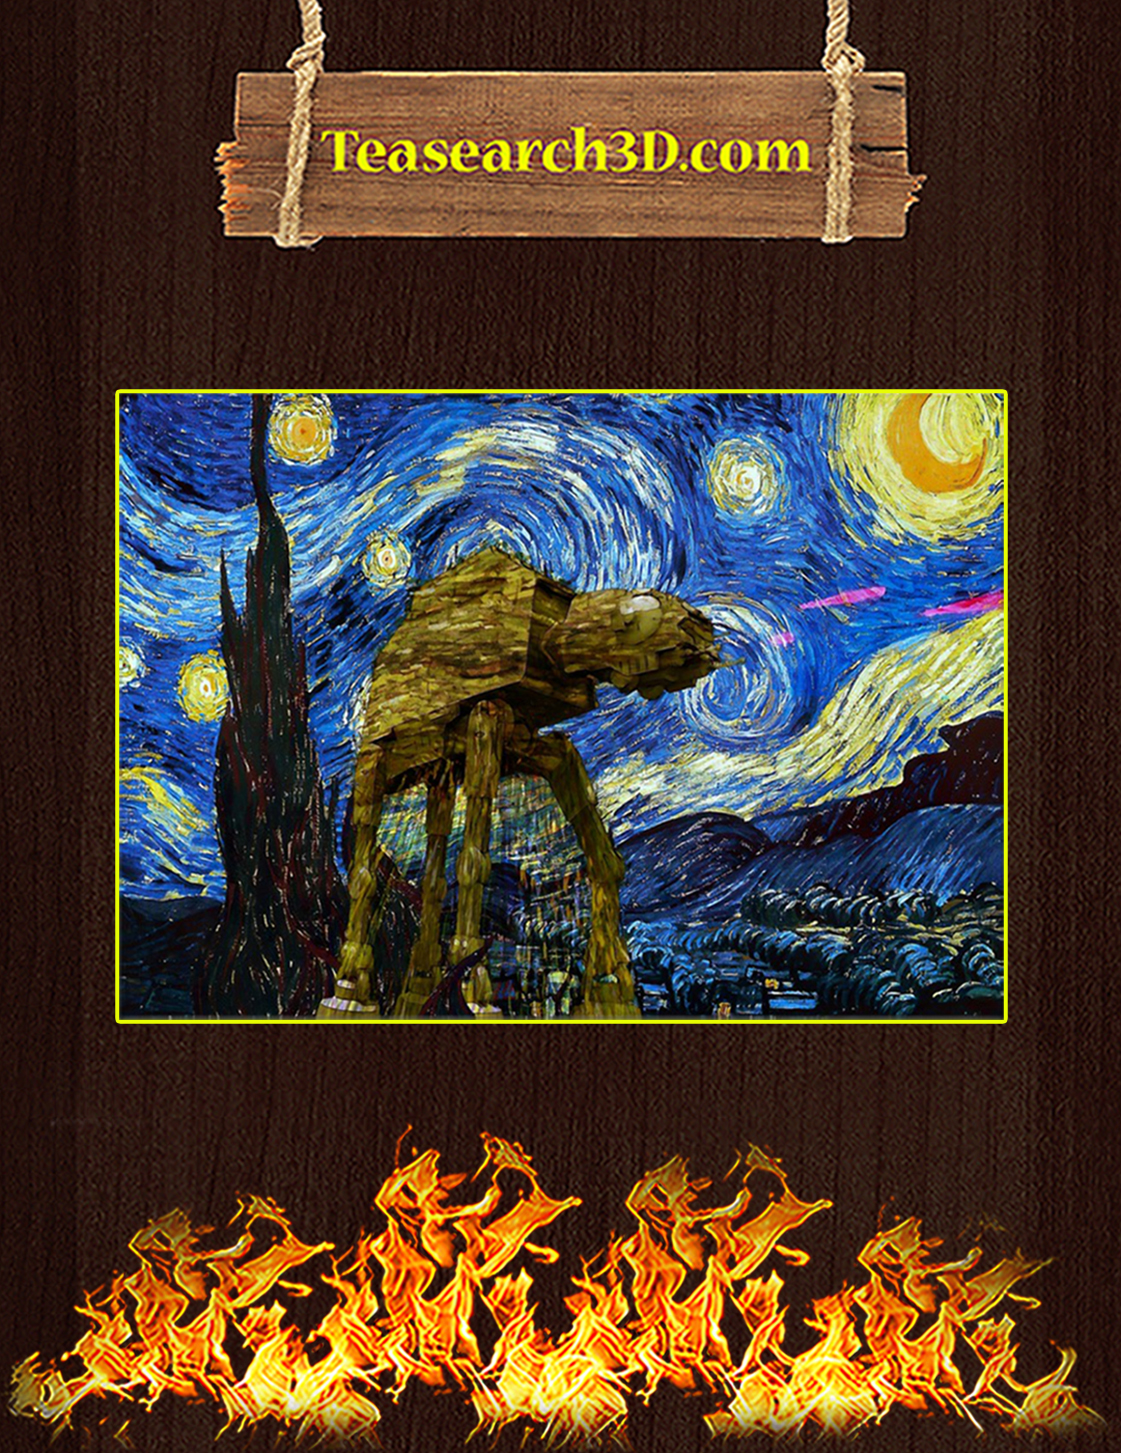 All Terrain Armored Transport starry night van gogh poster A3